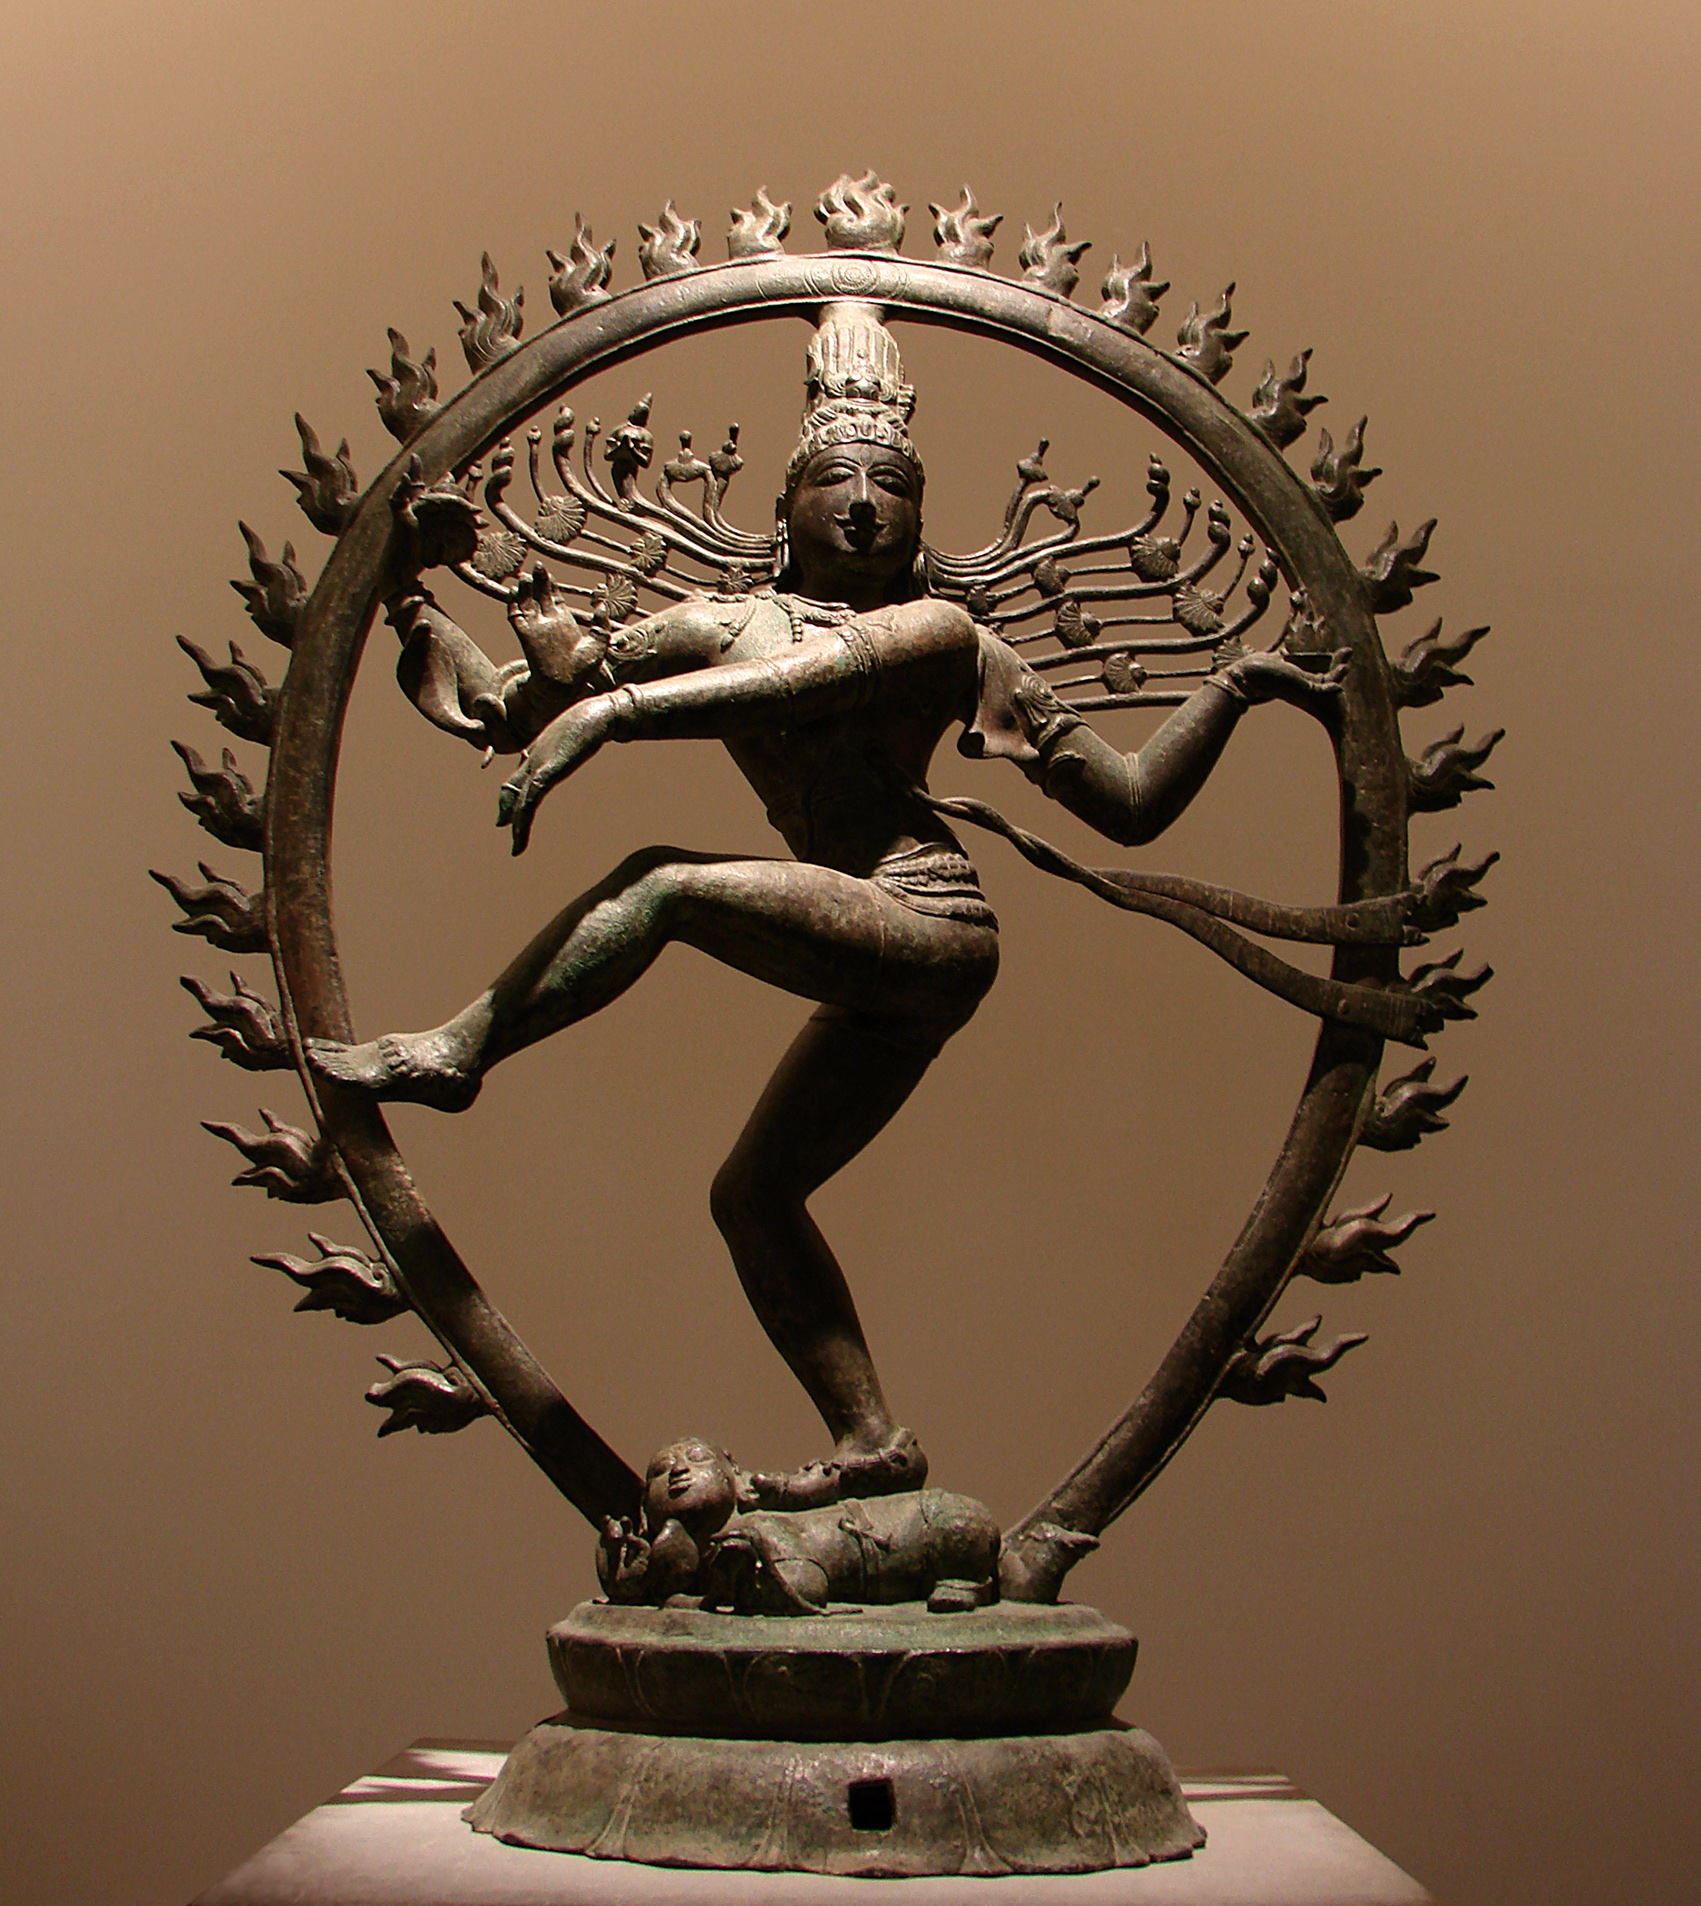 https://i0.wp.com/upload.wikimedia.org/wikipedia/commons/8/81/Shiva_Nataraja_Mus%C3%A9e_Guimet_25971.jpg